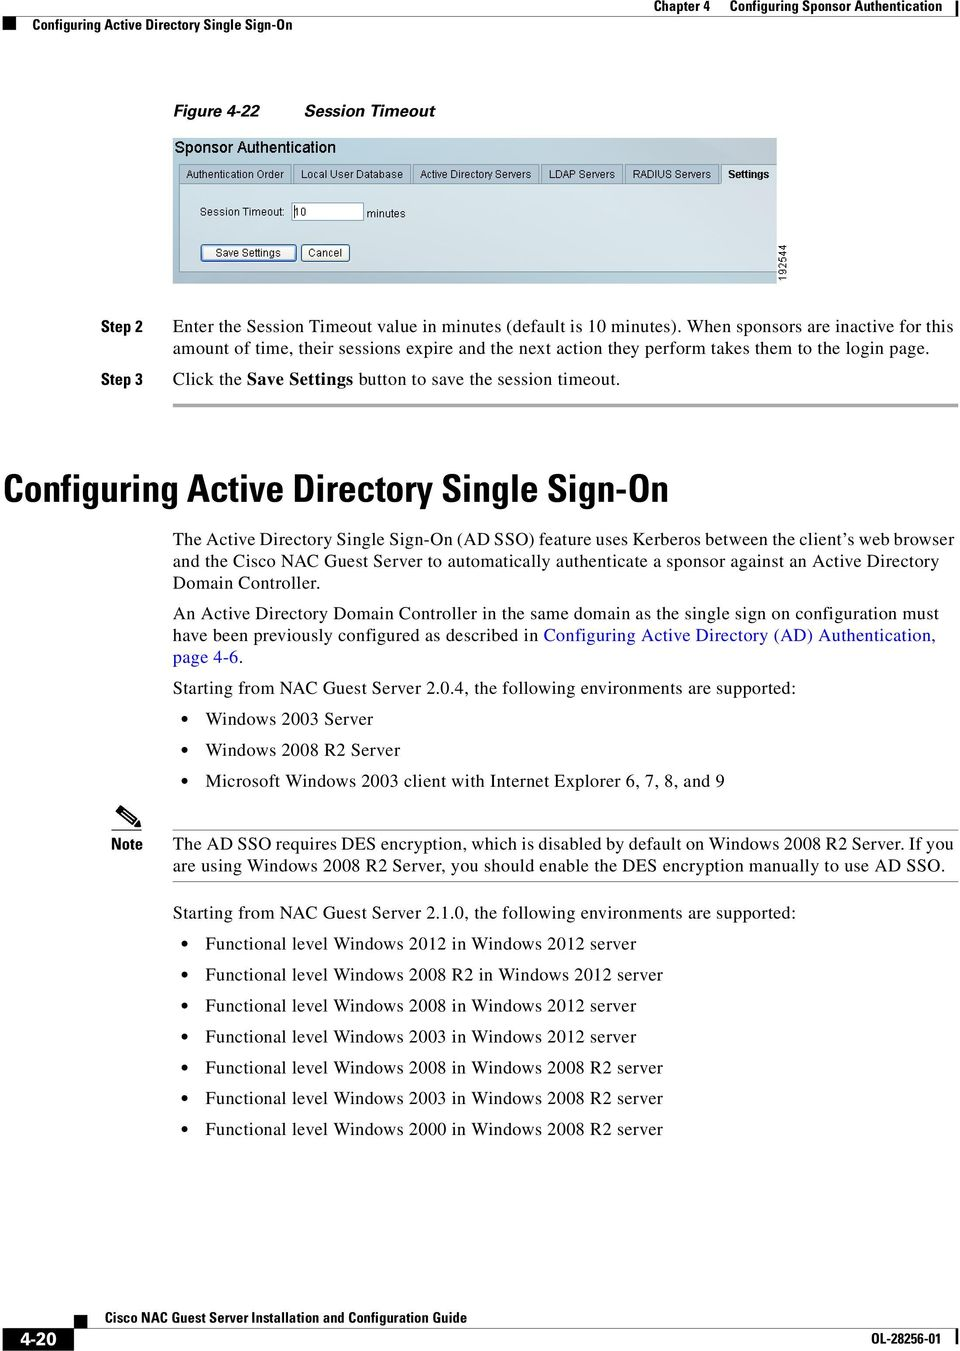 Configuring Active Directory Single Sign-On The Active Directory Single Sign-On (AD SSO) feature uses Kerberos between the client s web browser and the Cisco NAC Guest Server to automatically